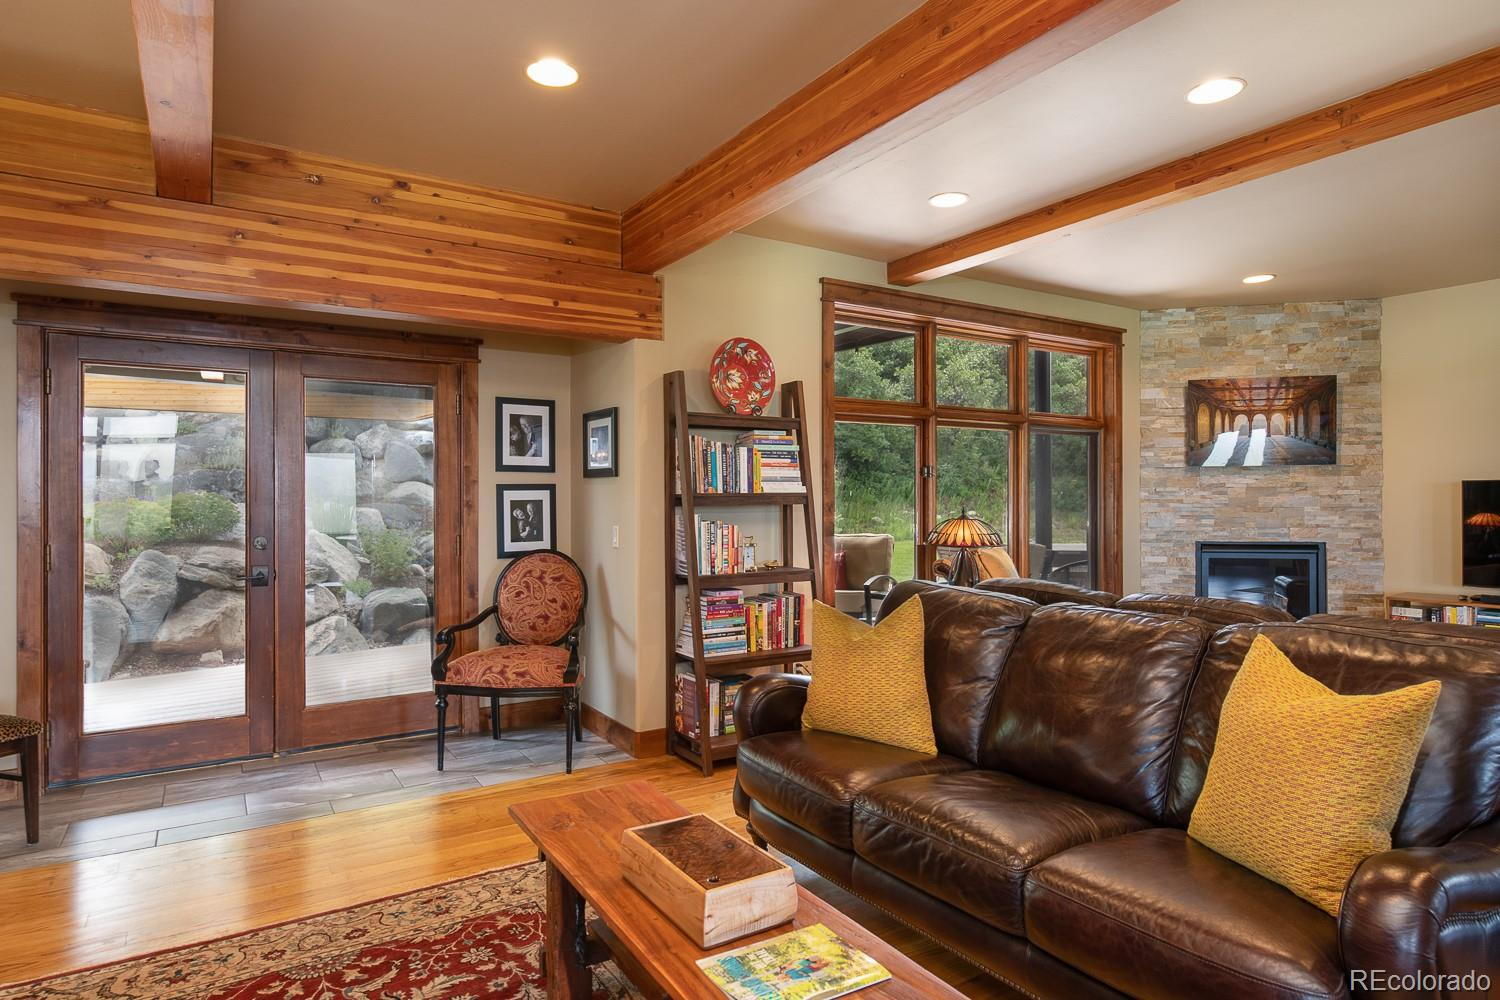 MLS# 4540014 - 14 - 1940 Clubhouse Drive, Steamboat Springs, CO 80487